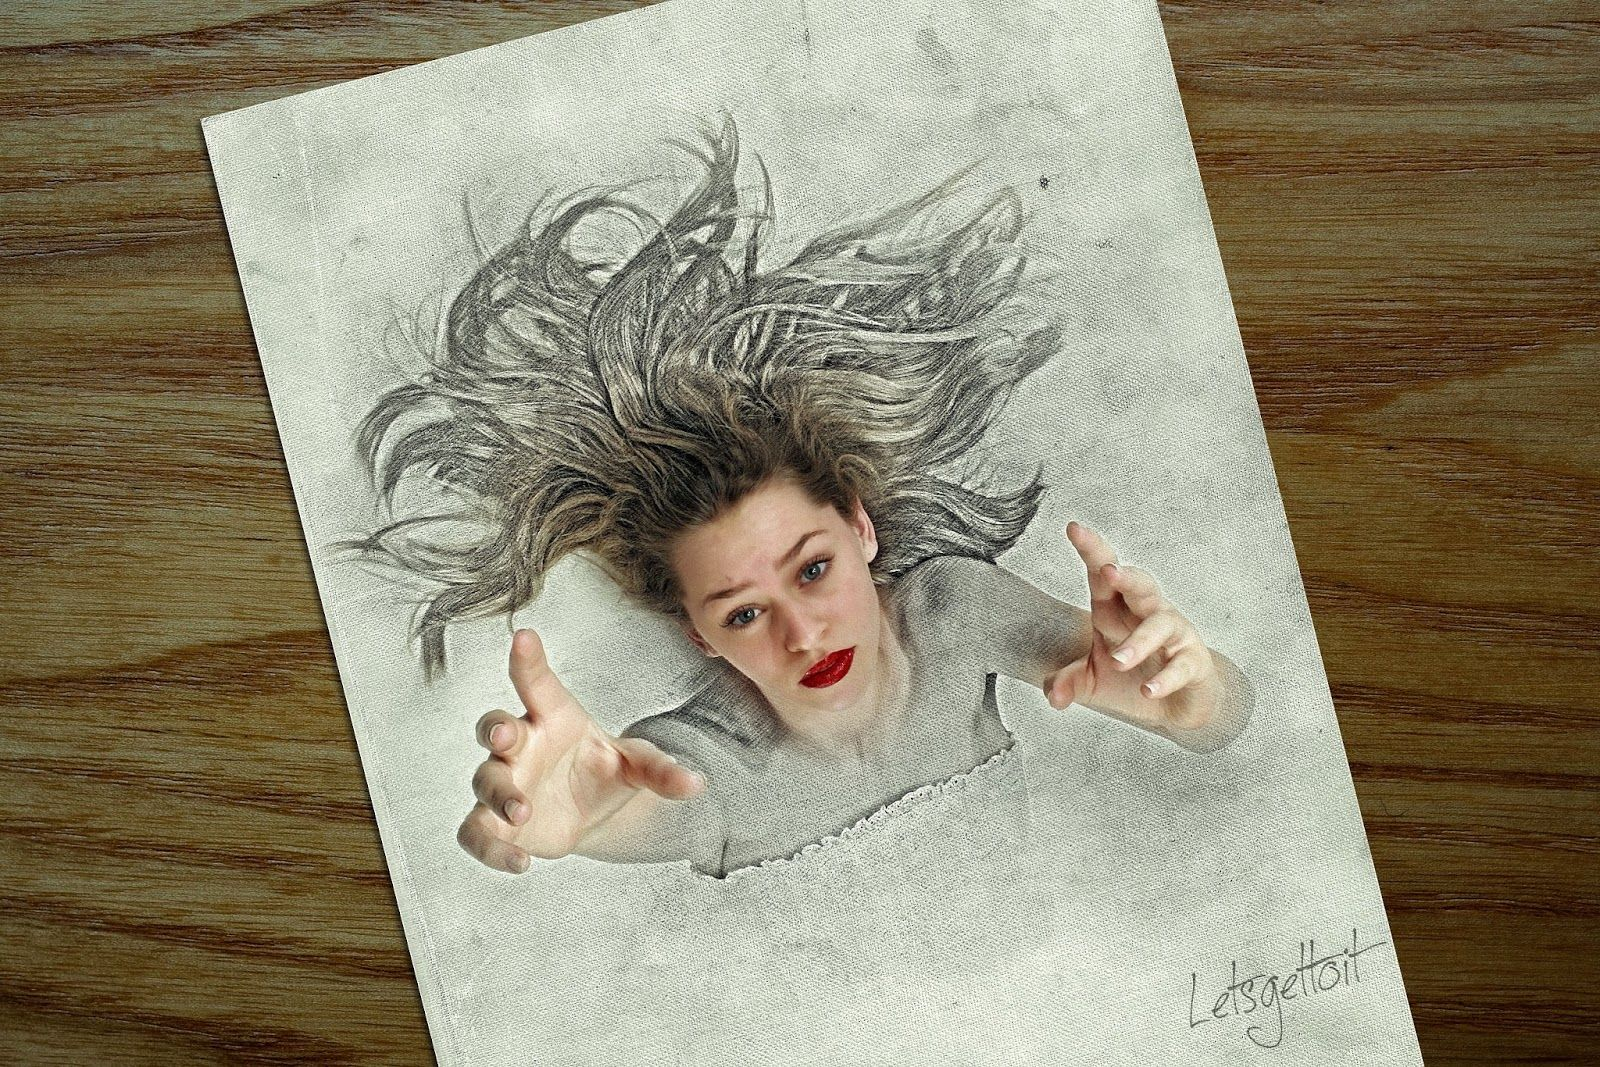 3d sketch drawing effect photoshop tutorial photo effect 3d sketch drawing effect photoshop tutorial baditri Image collections